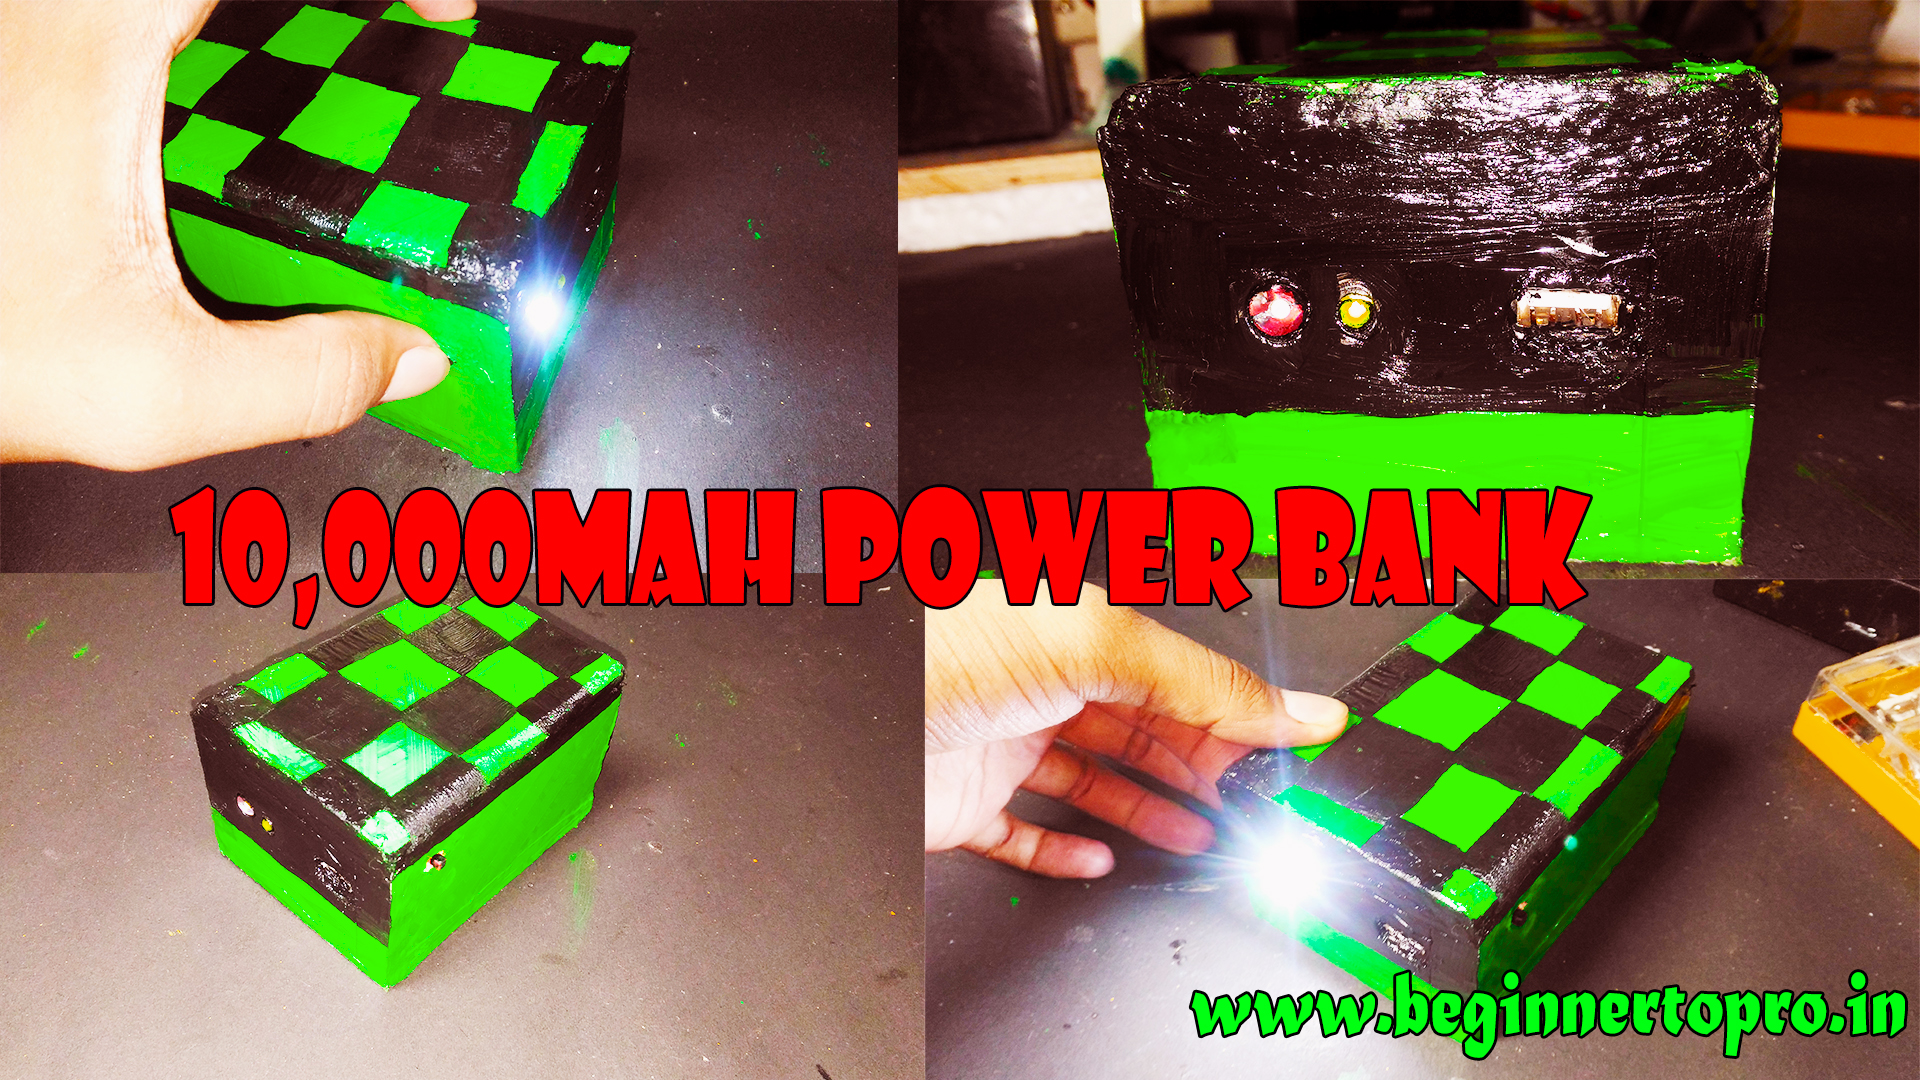 How To Make A 10000 Mah Power Bank Under Rs 5007666 Us Dollar 500 Wiring Diagram